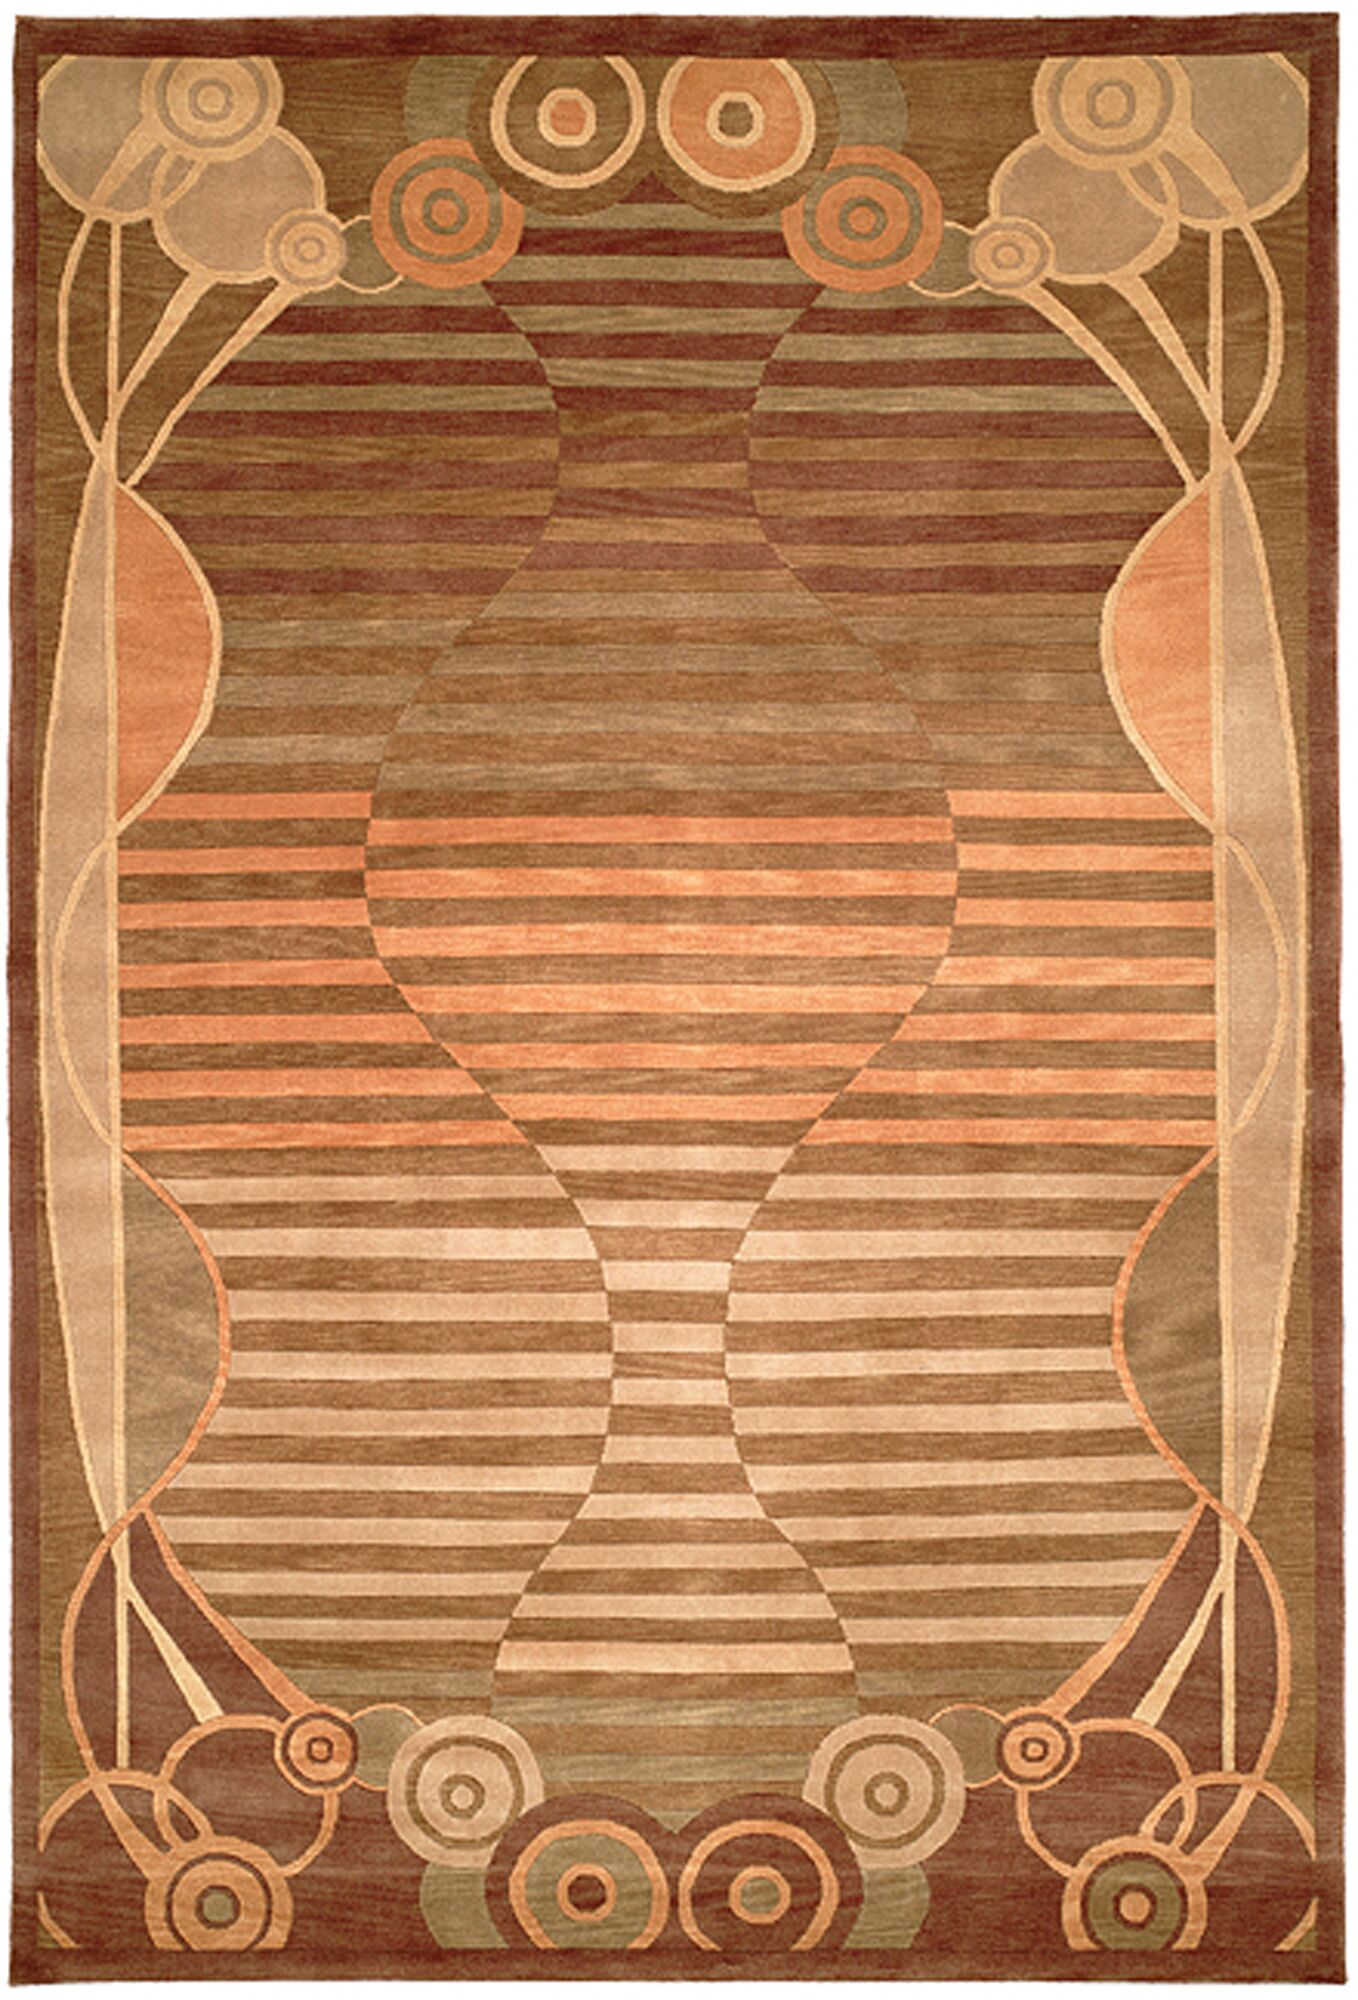 Kneiske Tibetan Hand Knotted Wool Brown/Pink Area Rug Rug Size: Rectangle 9' x 12'